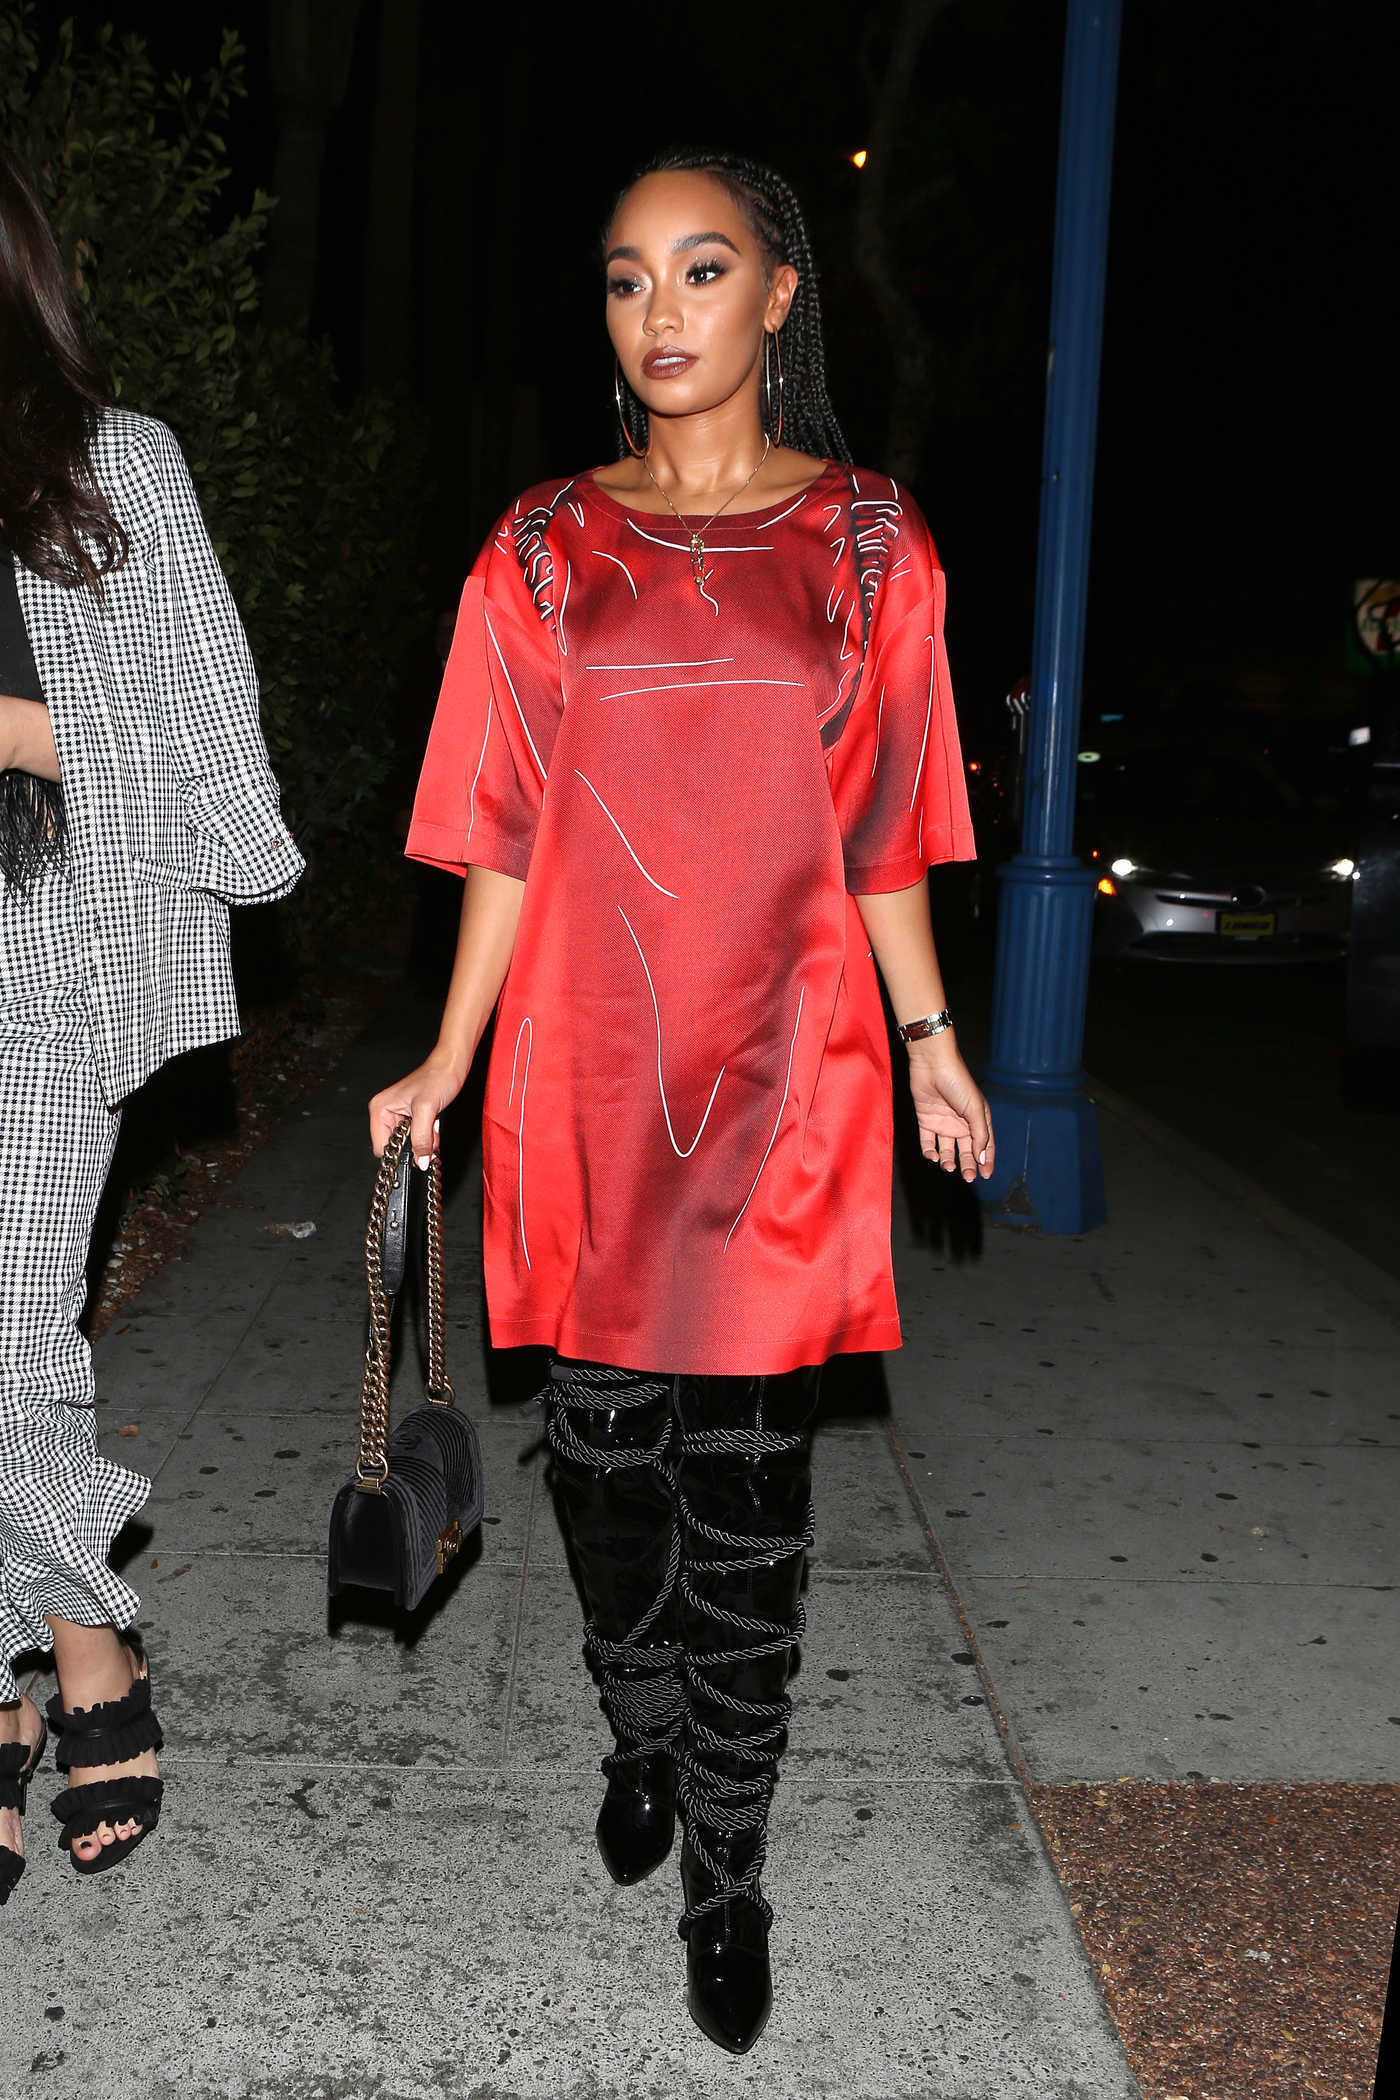 Leigh-Anne Pinnock Arrives at Delilah's Night Club in West Hollywood 08/03/2017